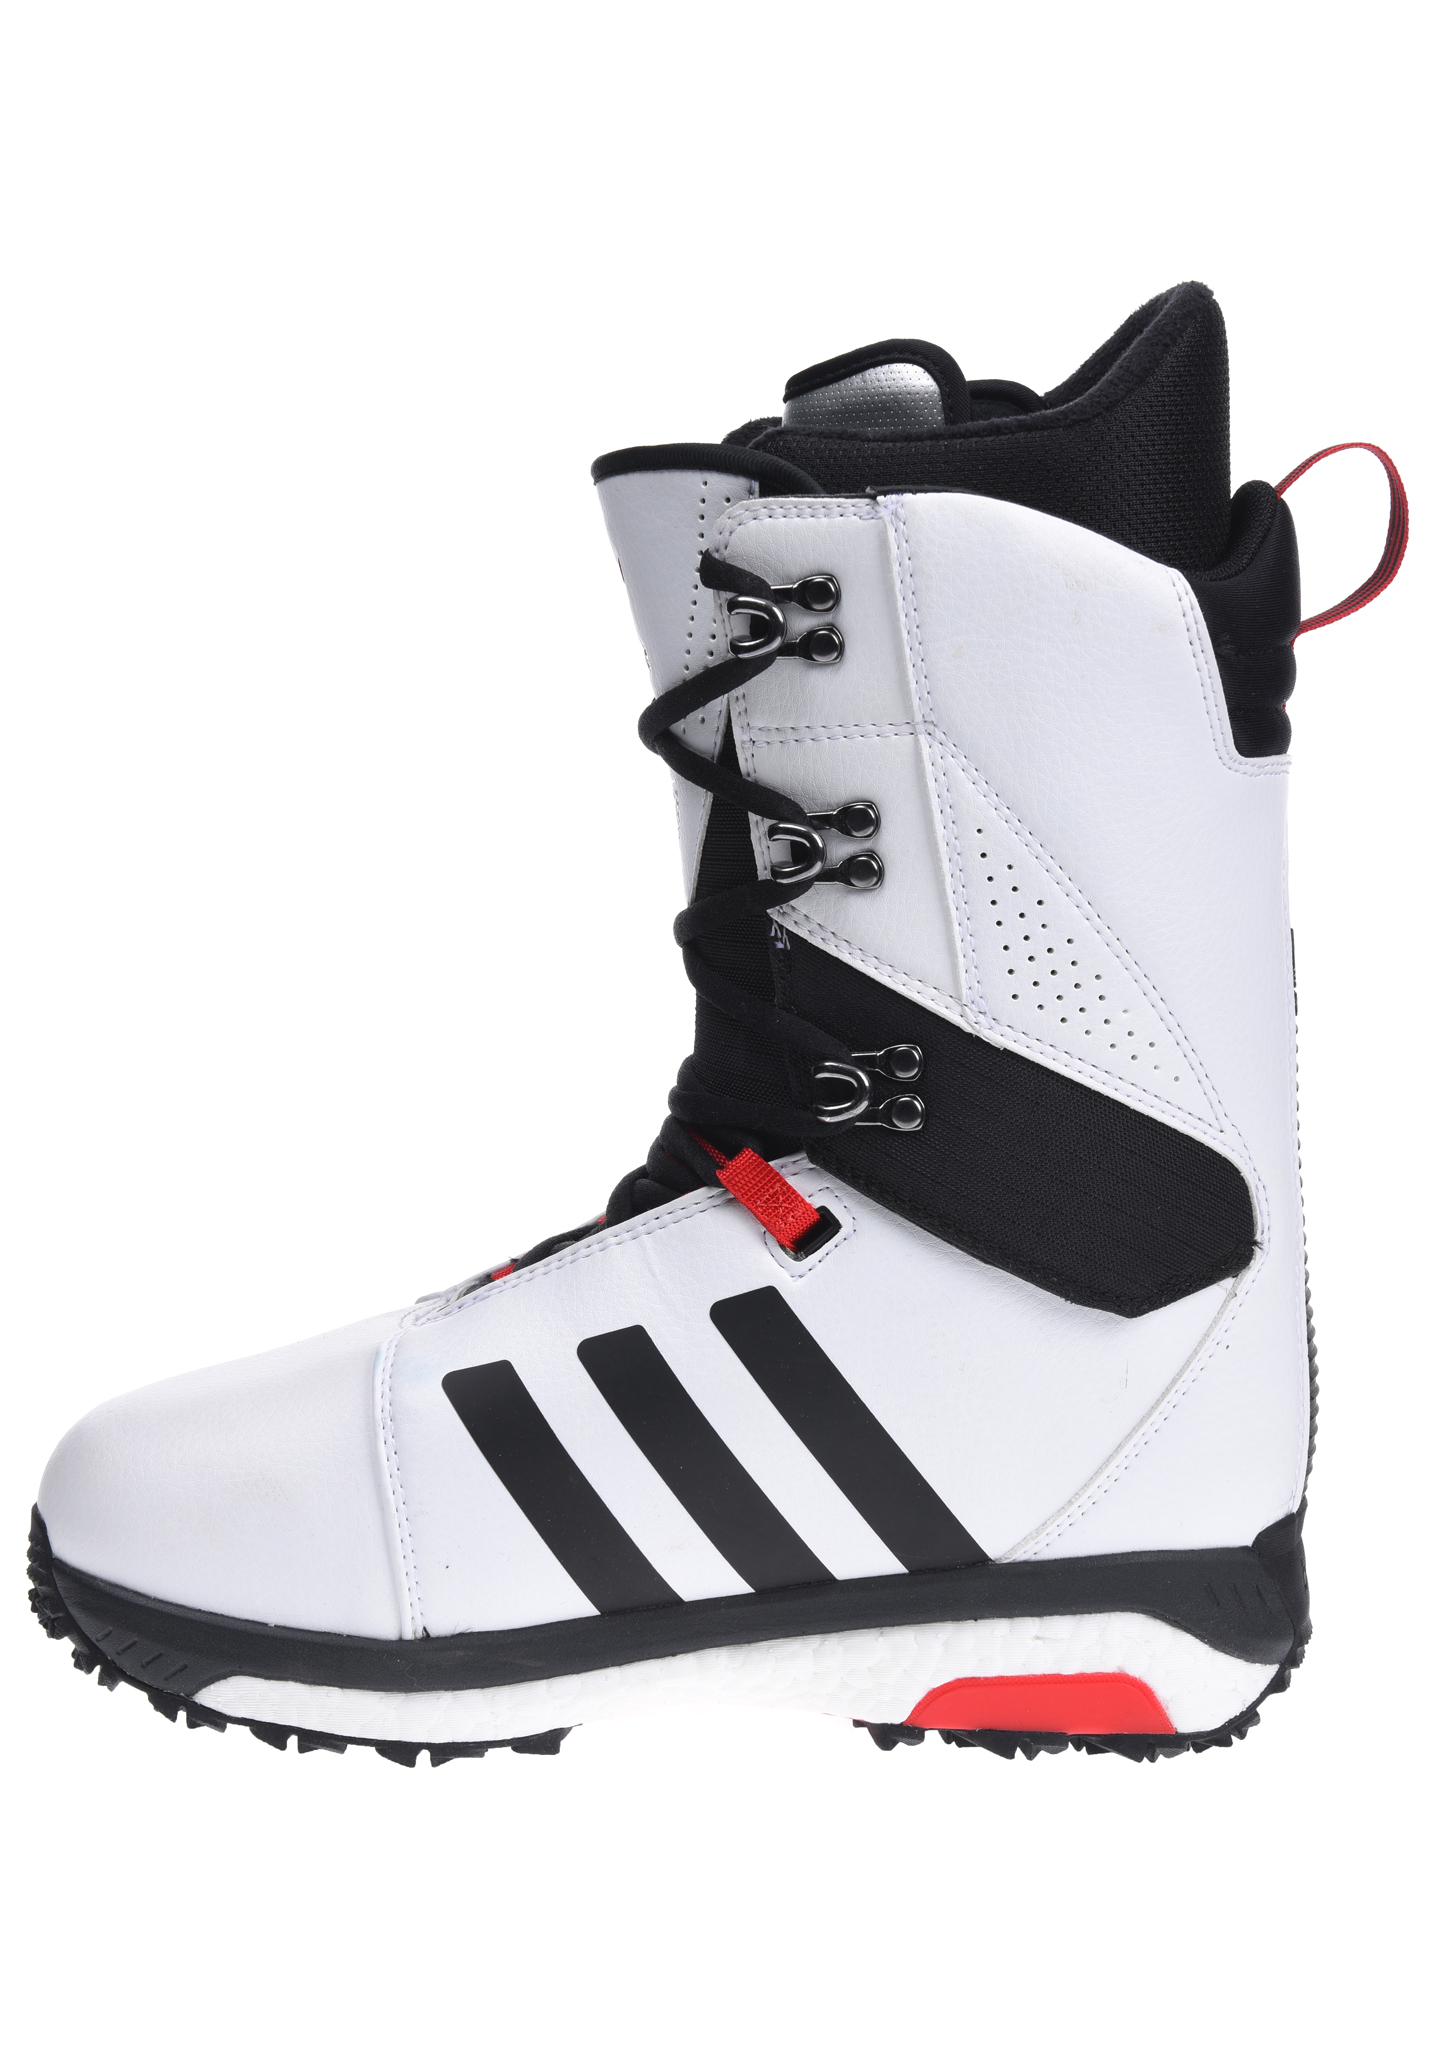 on sale 20a20 ac291 Adidas-Snowboarding-Tactical-ADV-Herren-Snowboard-Boots-Snow-